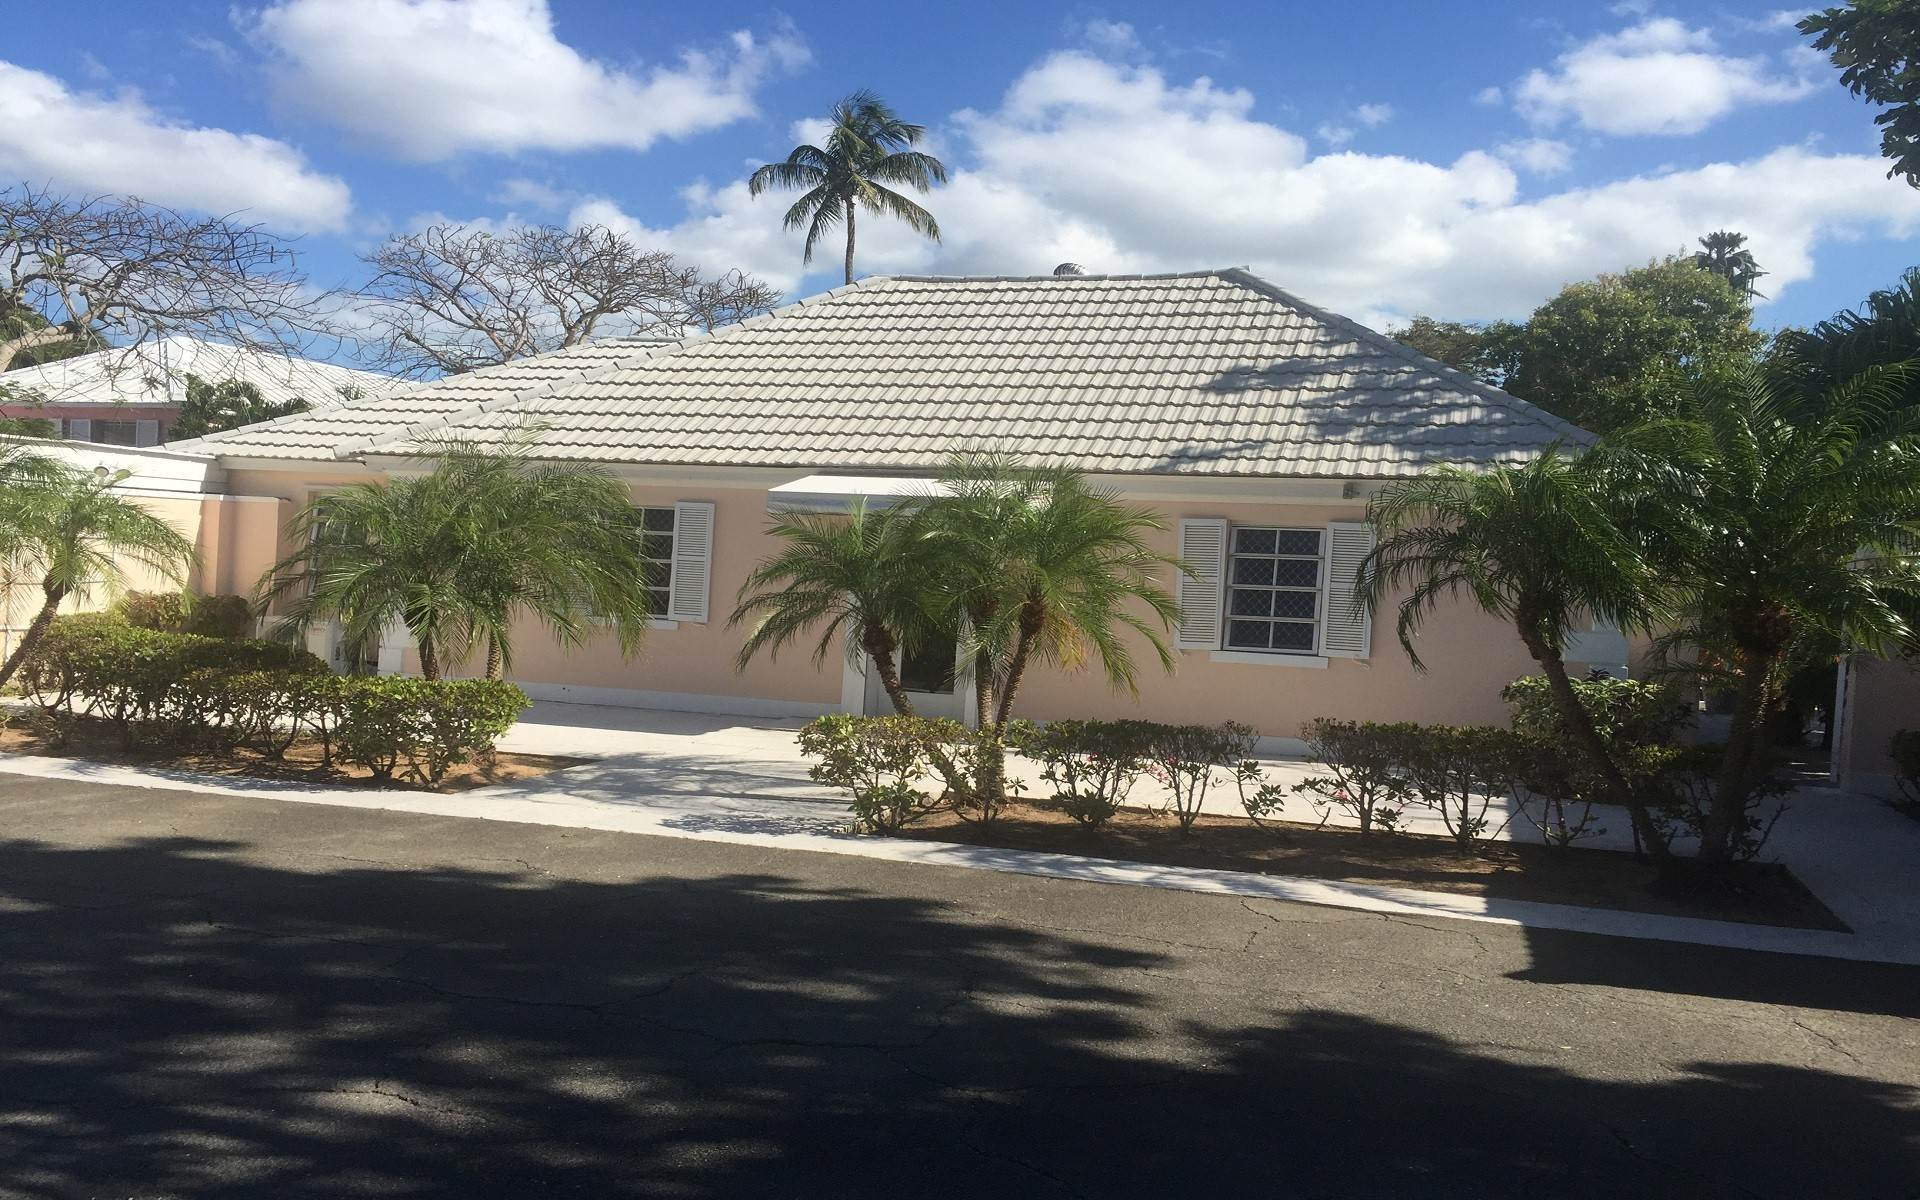 Commercial for Rent at Office space in Cable Beach - MLS 44286 Cable Beach, Nassau And Paradise Island, Bahamas